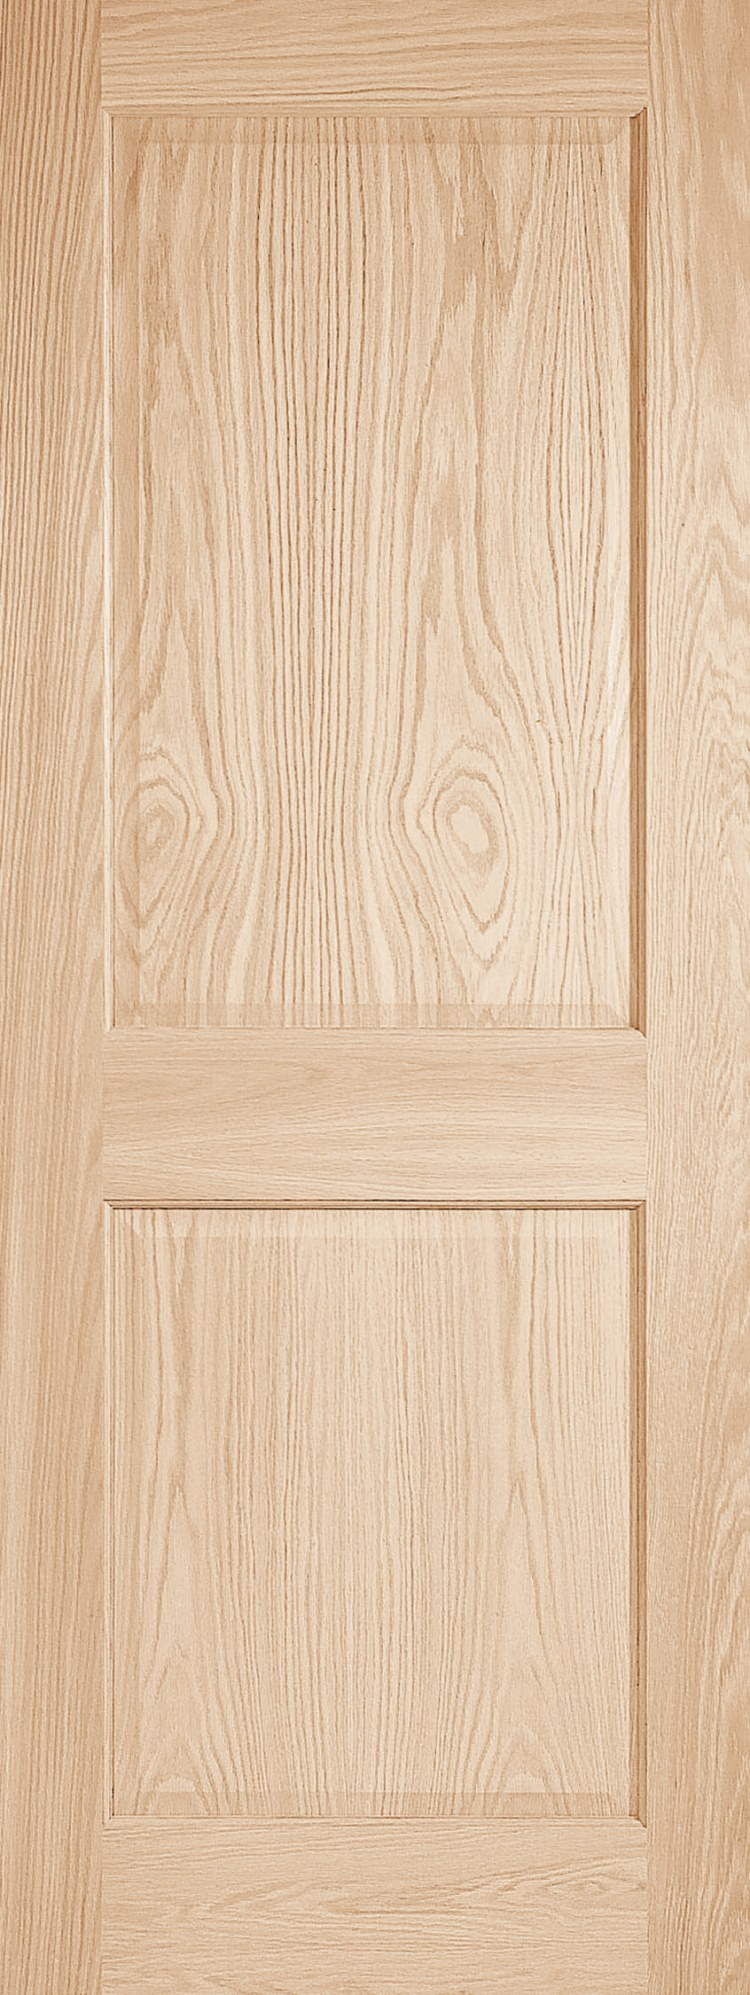 china wooden solid carving antique doors wood gynjtxmaqxwh design door single product